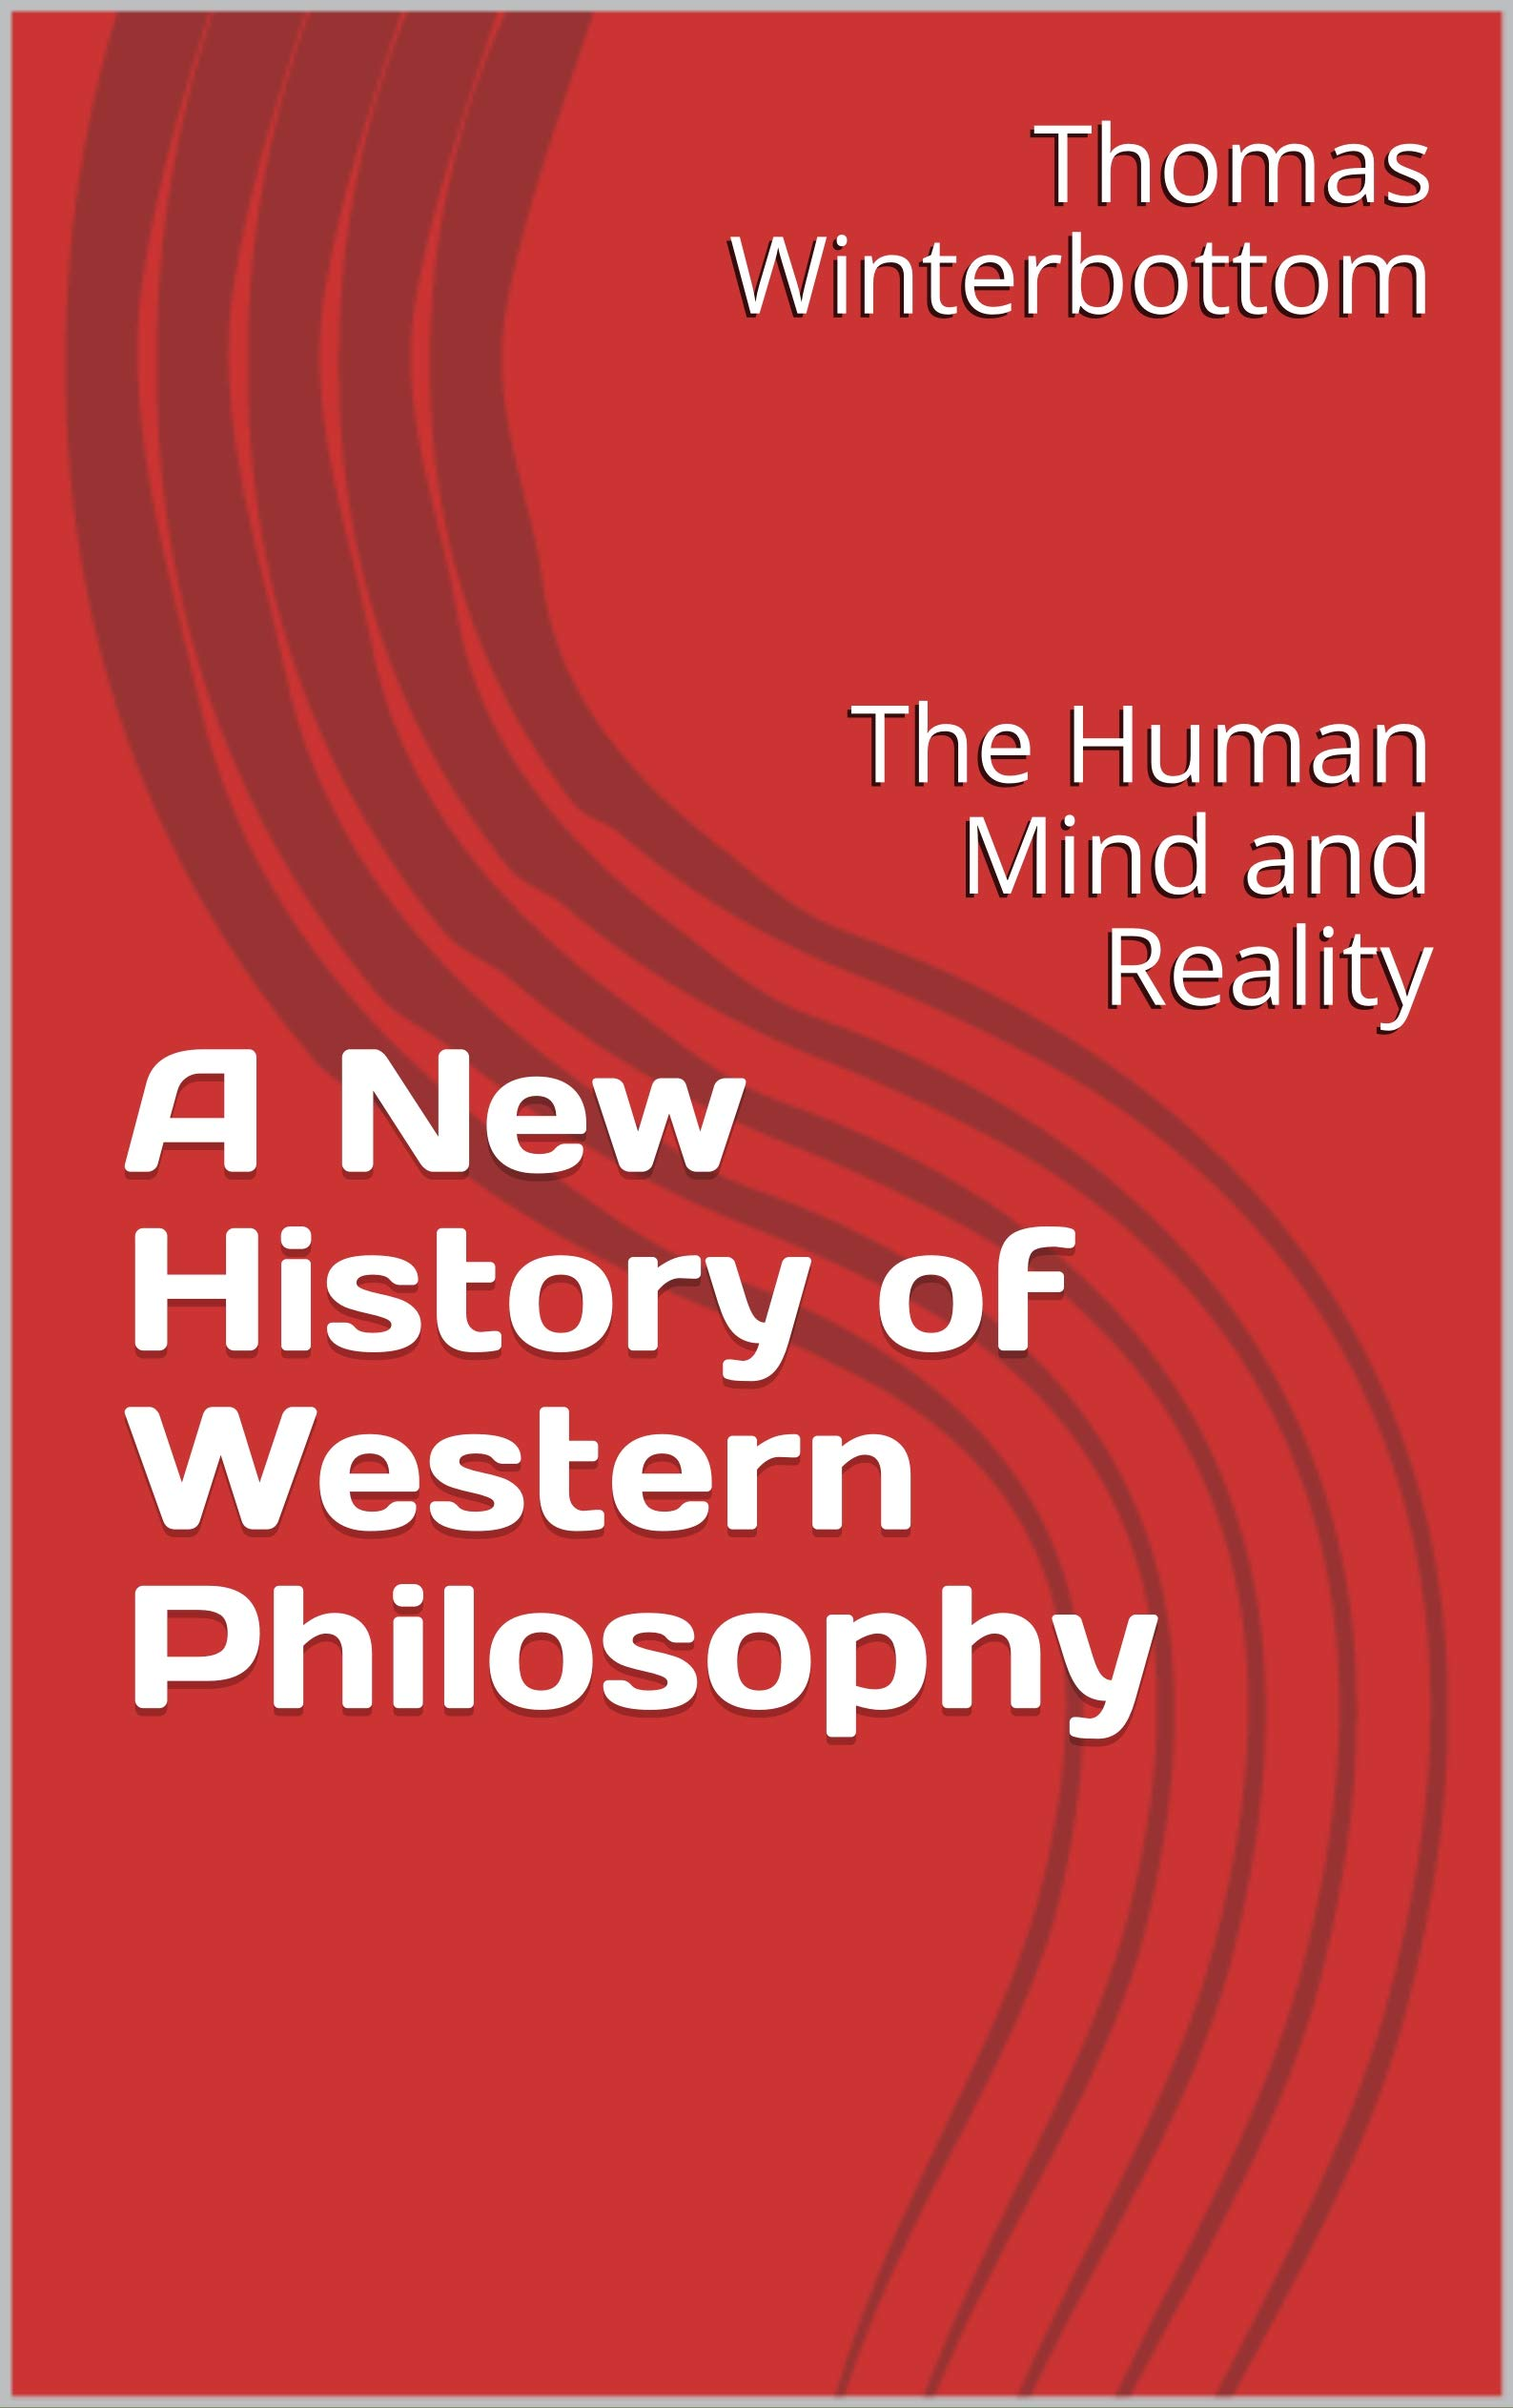 A New History of Western Philosophy: The Human Mind and Reality